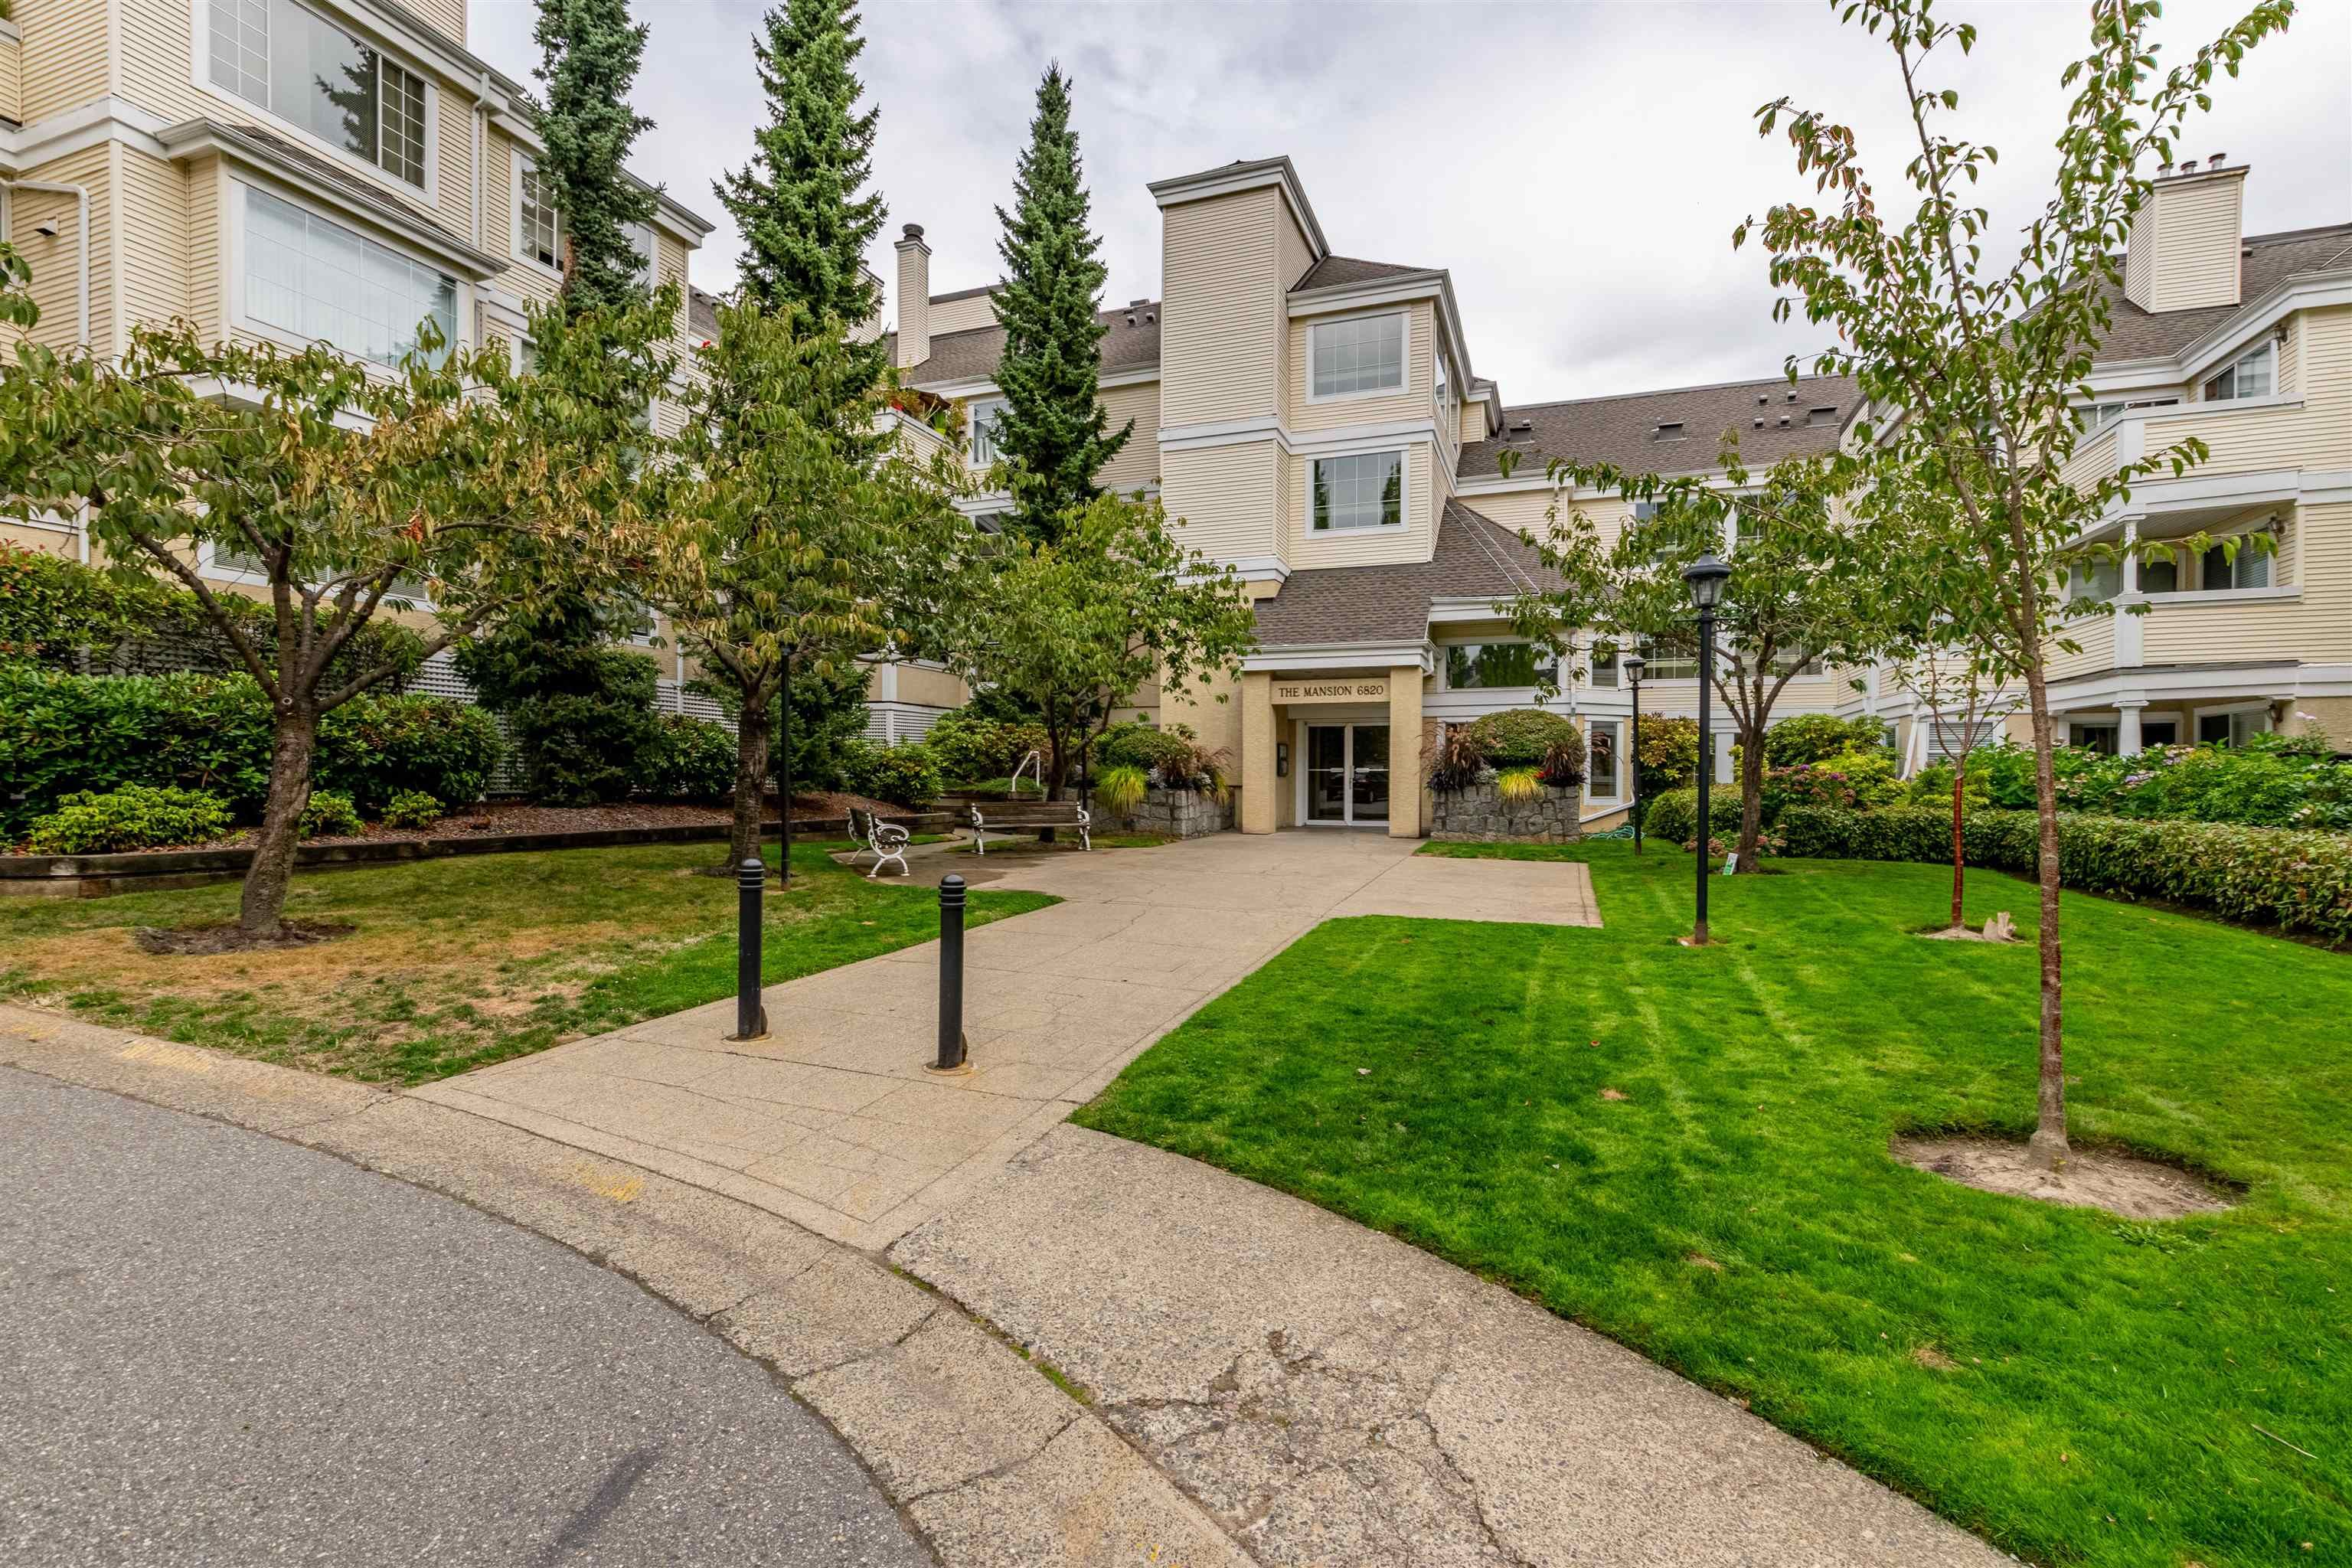 """Main Photo: 408 6820 RUMBLE Street in Burnaby: South Slope Condo for sale in """"The Mansion at Governor's Walk"""" (Burnaby South)  : MLS®# R2616832"""